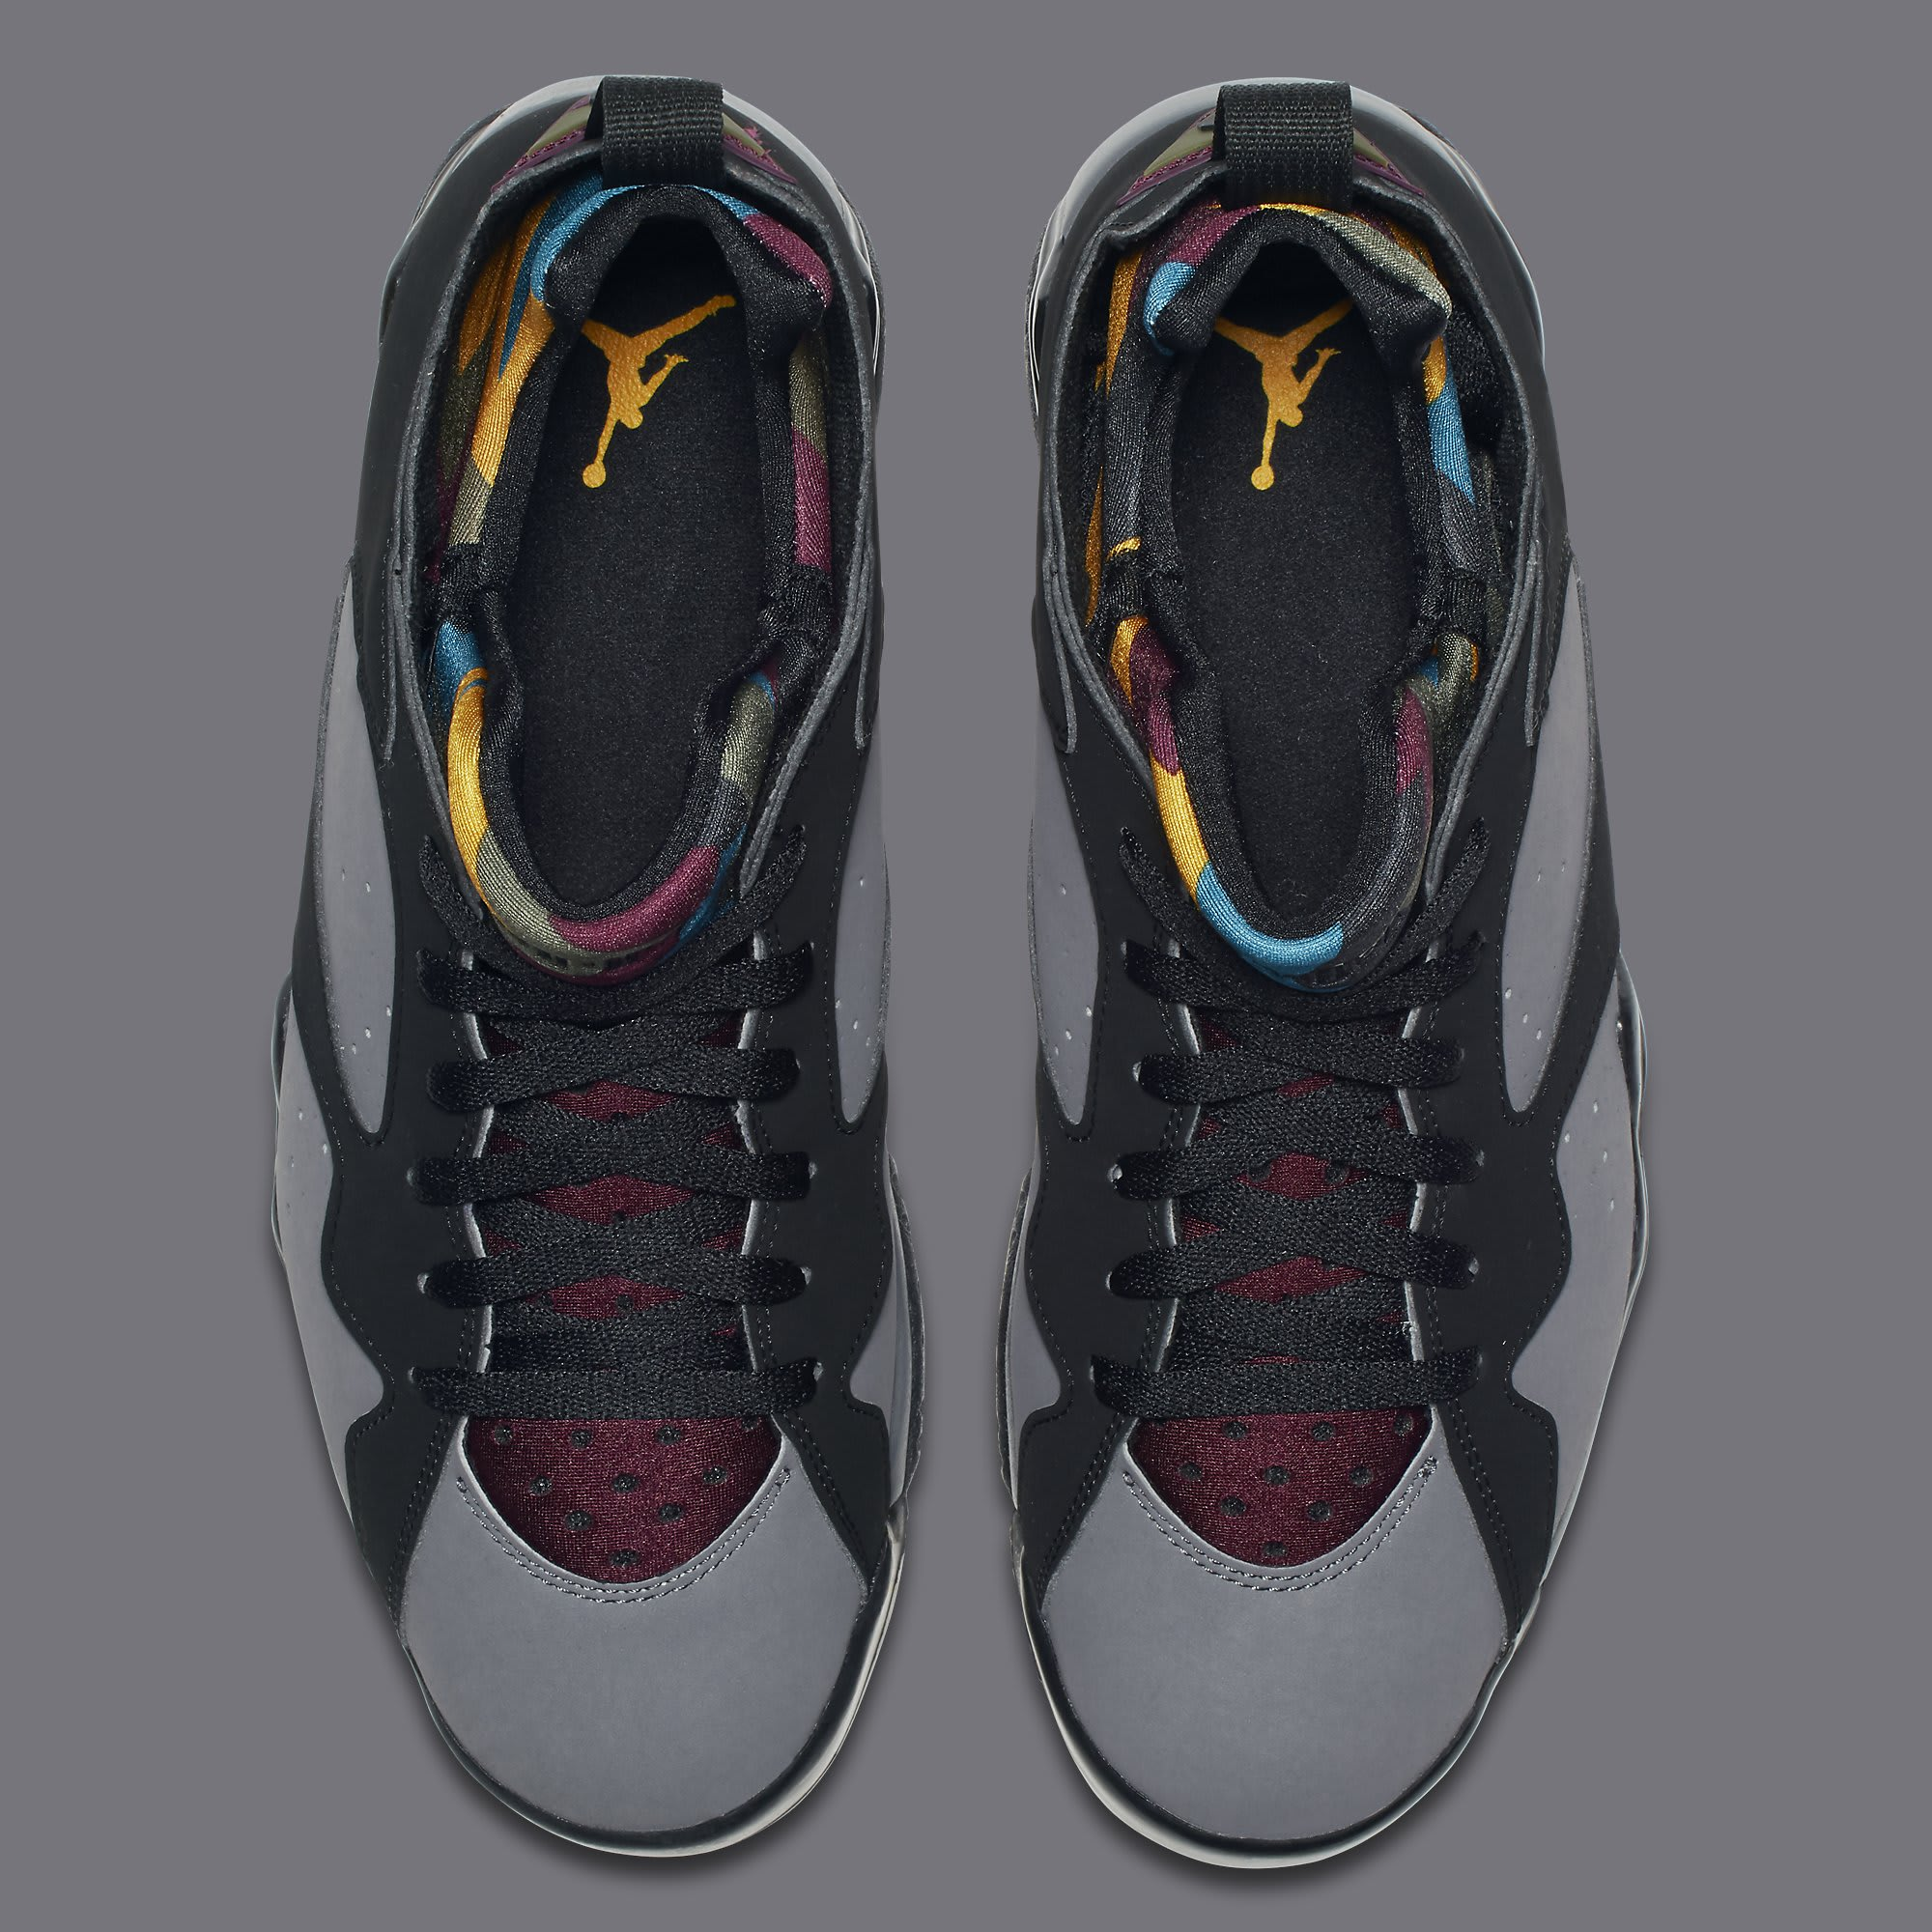 new arrivals b4381 7a92a Image via Nike Air Jordan 7 VII Low Bordeaux Release date AR4422-034 Top